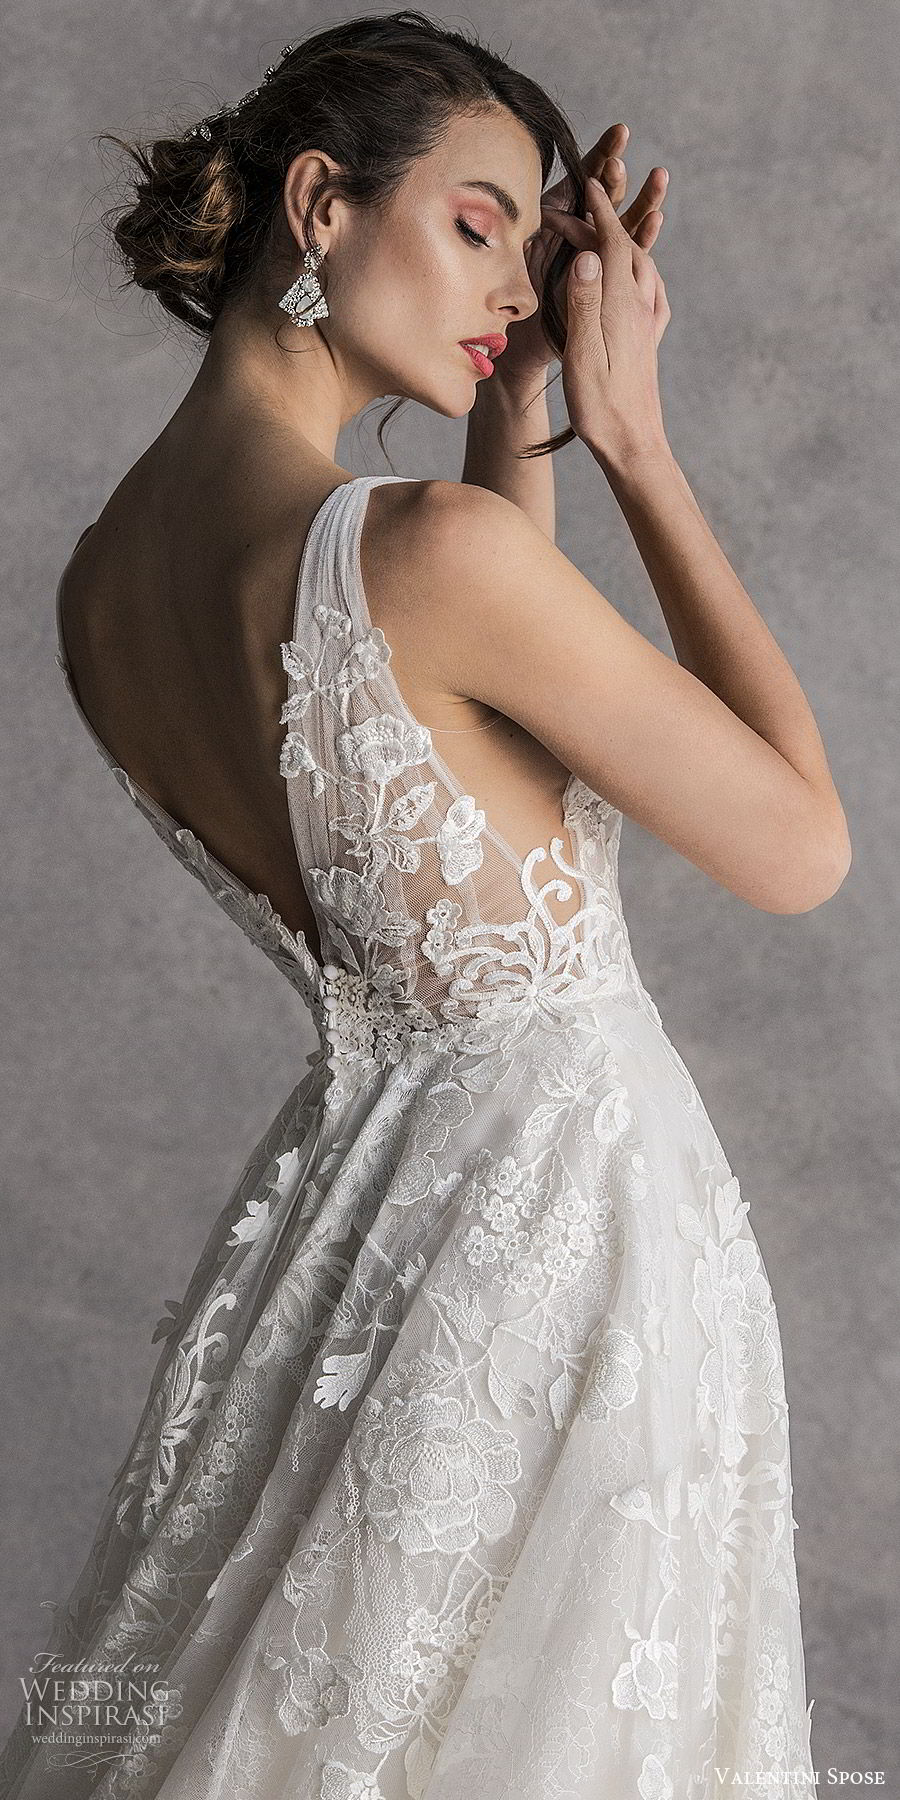 valentini spose spring 2020 bridal sleeveless thick straps deep v neckline fully embellished a line ball gown wedding dress (6) romantic princess zbv